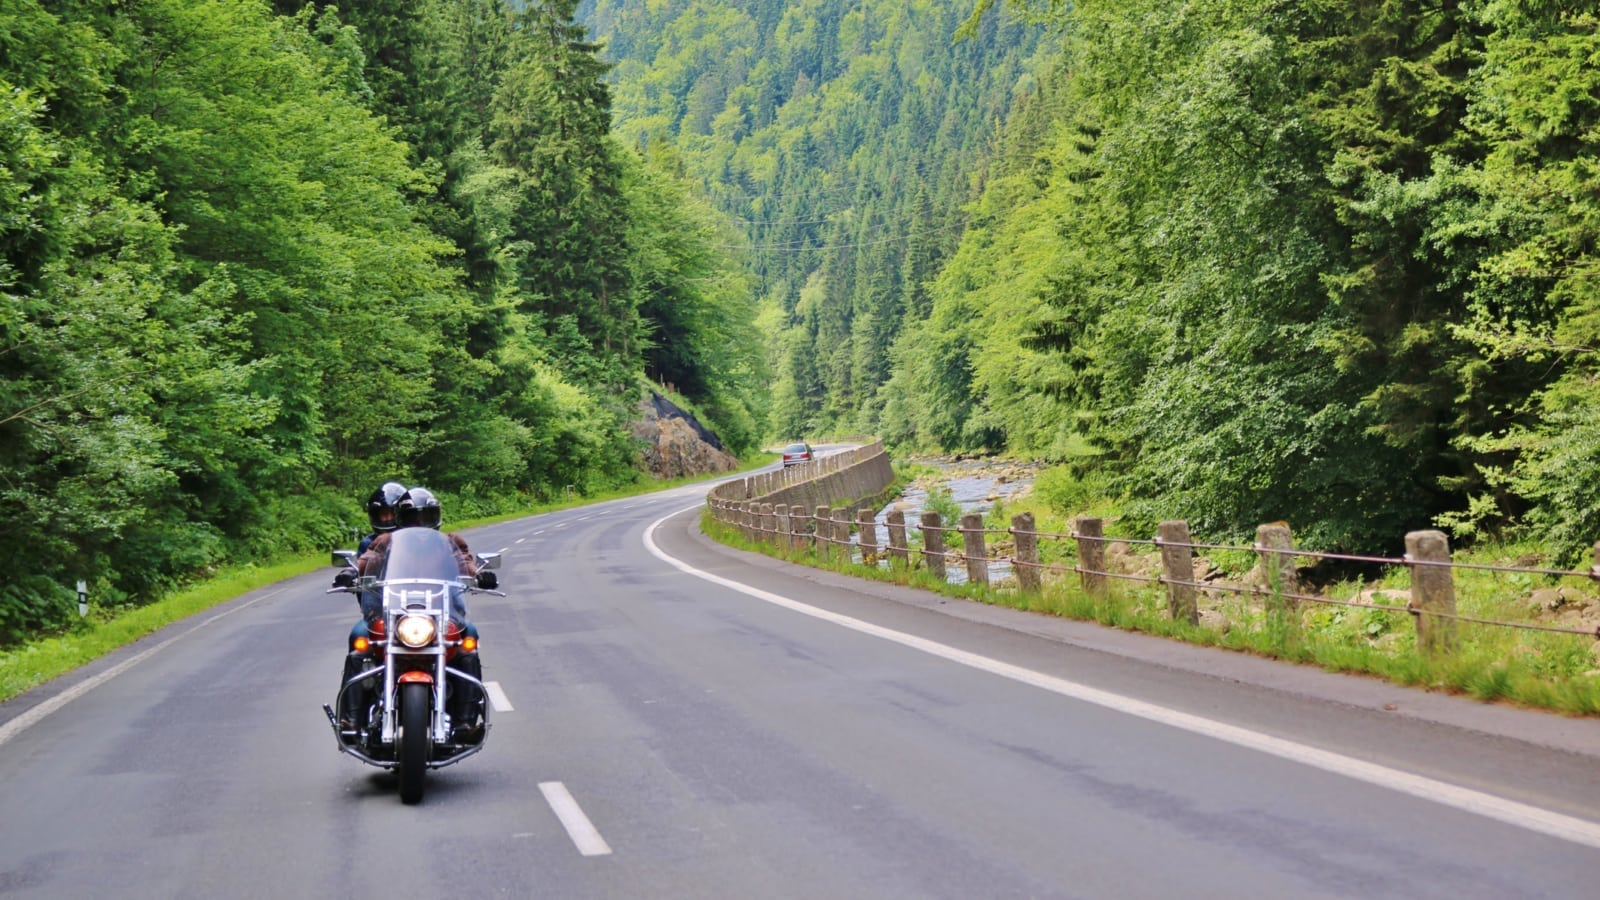 Motorcycle Riders Green Landscape